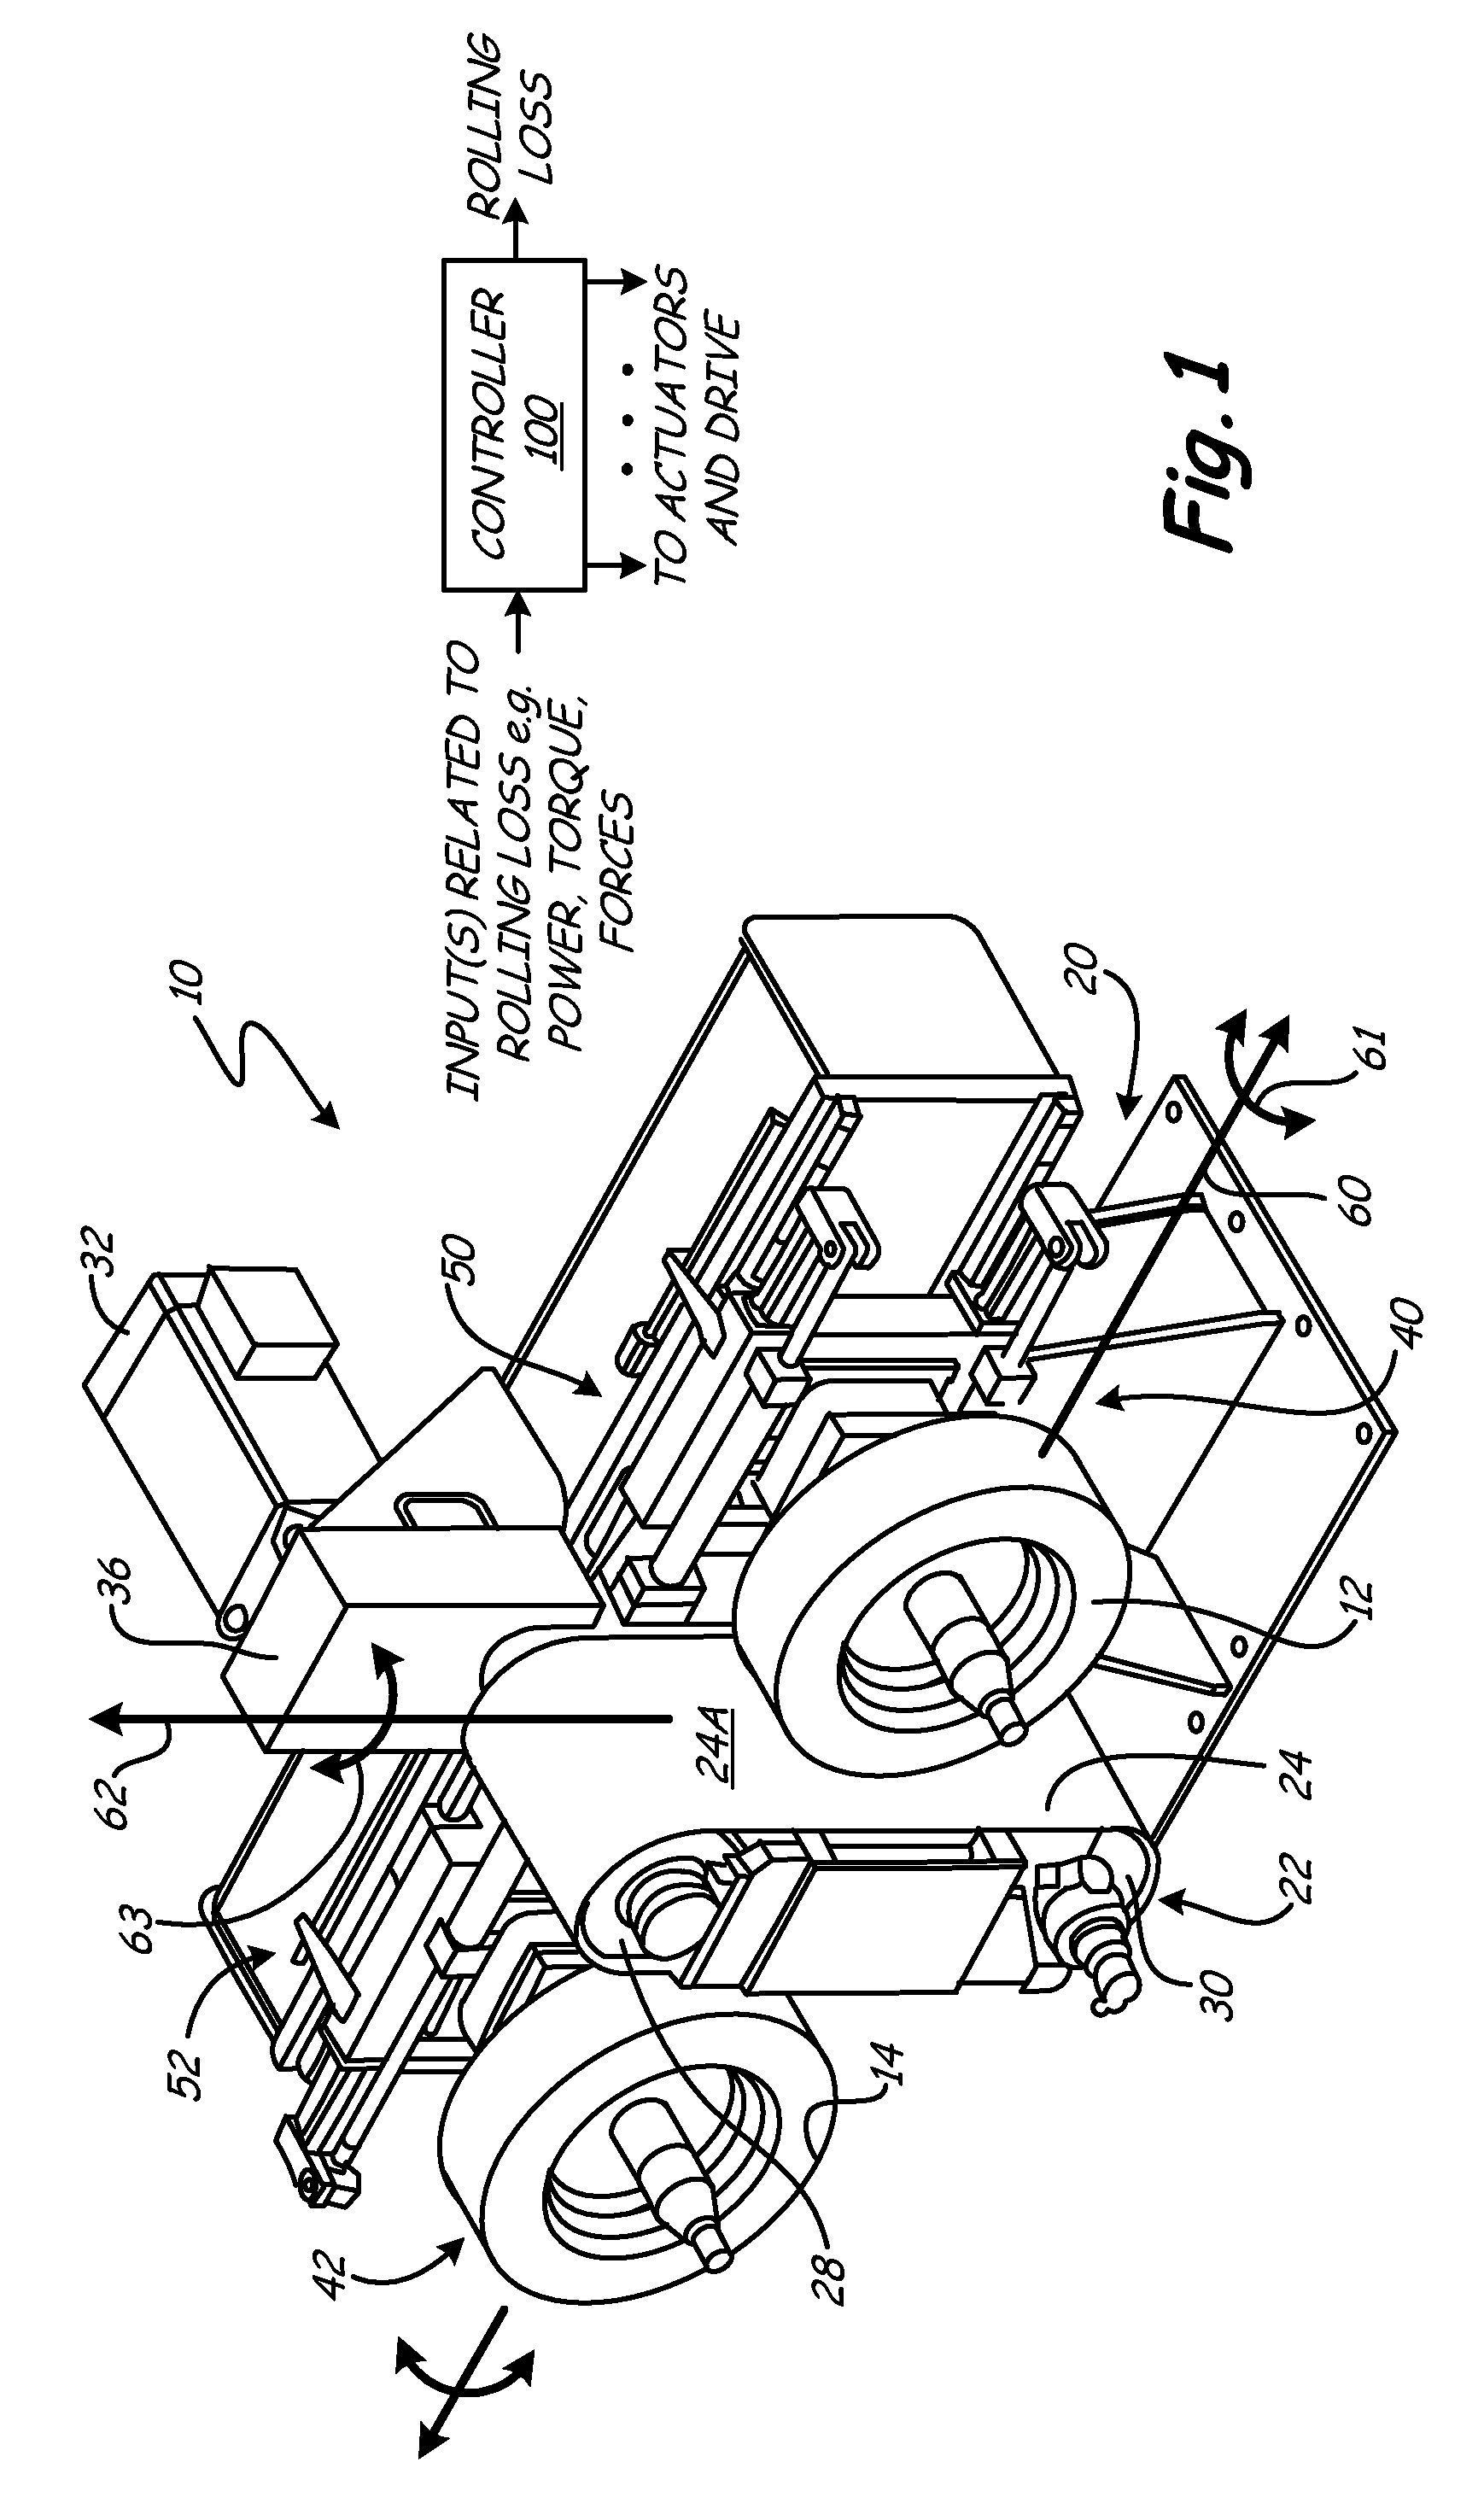 brevet us7908916 flat belt roadway simulator with steer and or  patent drawing